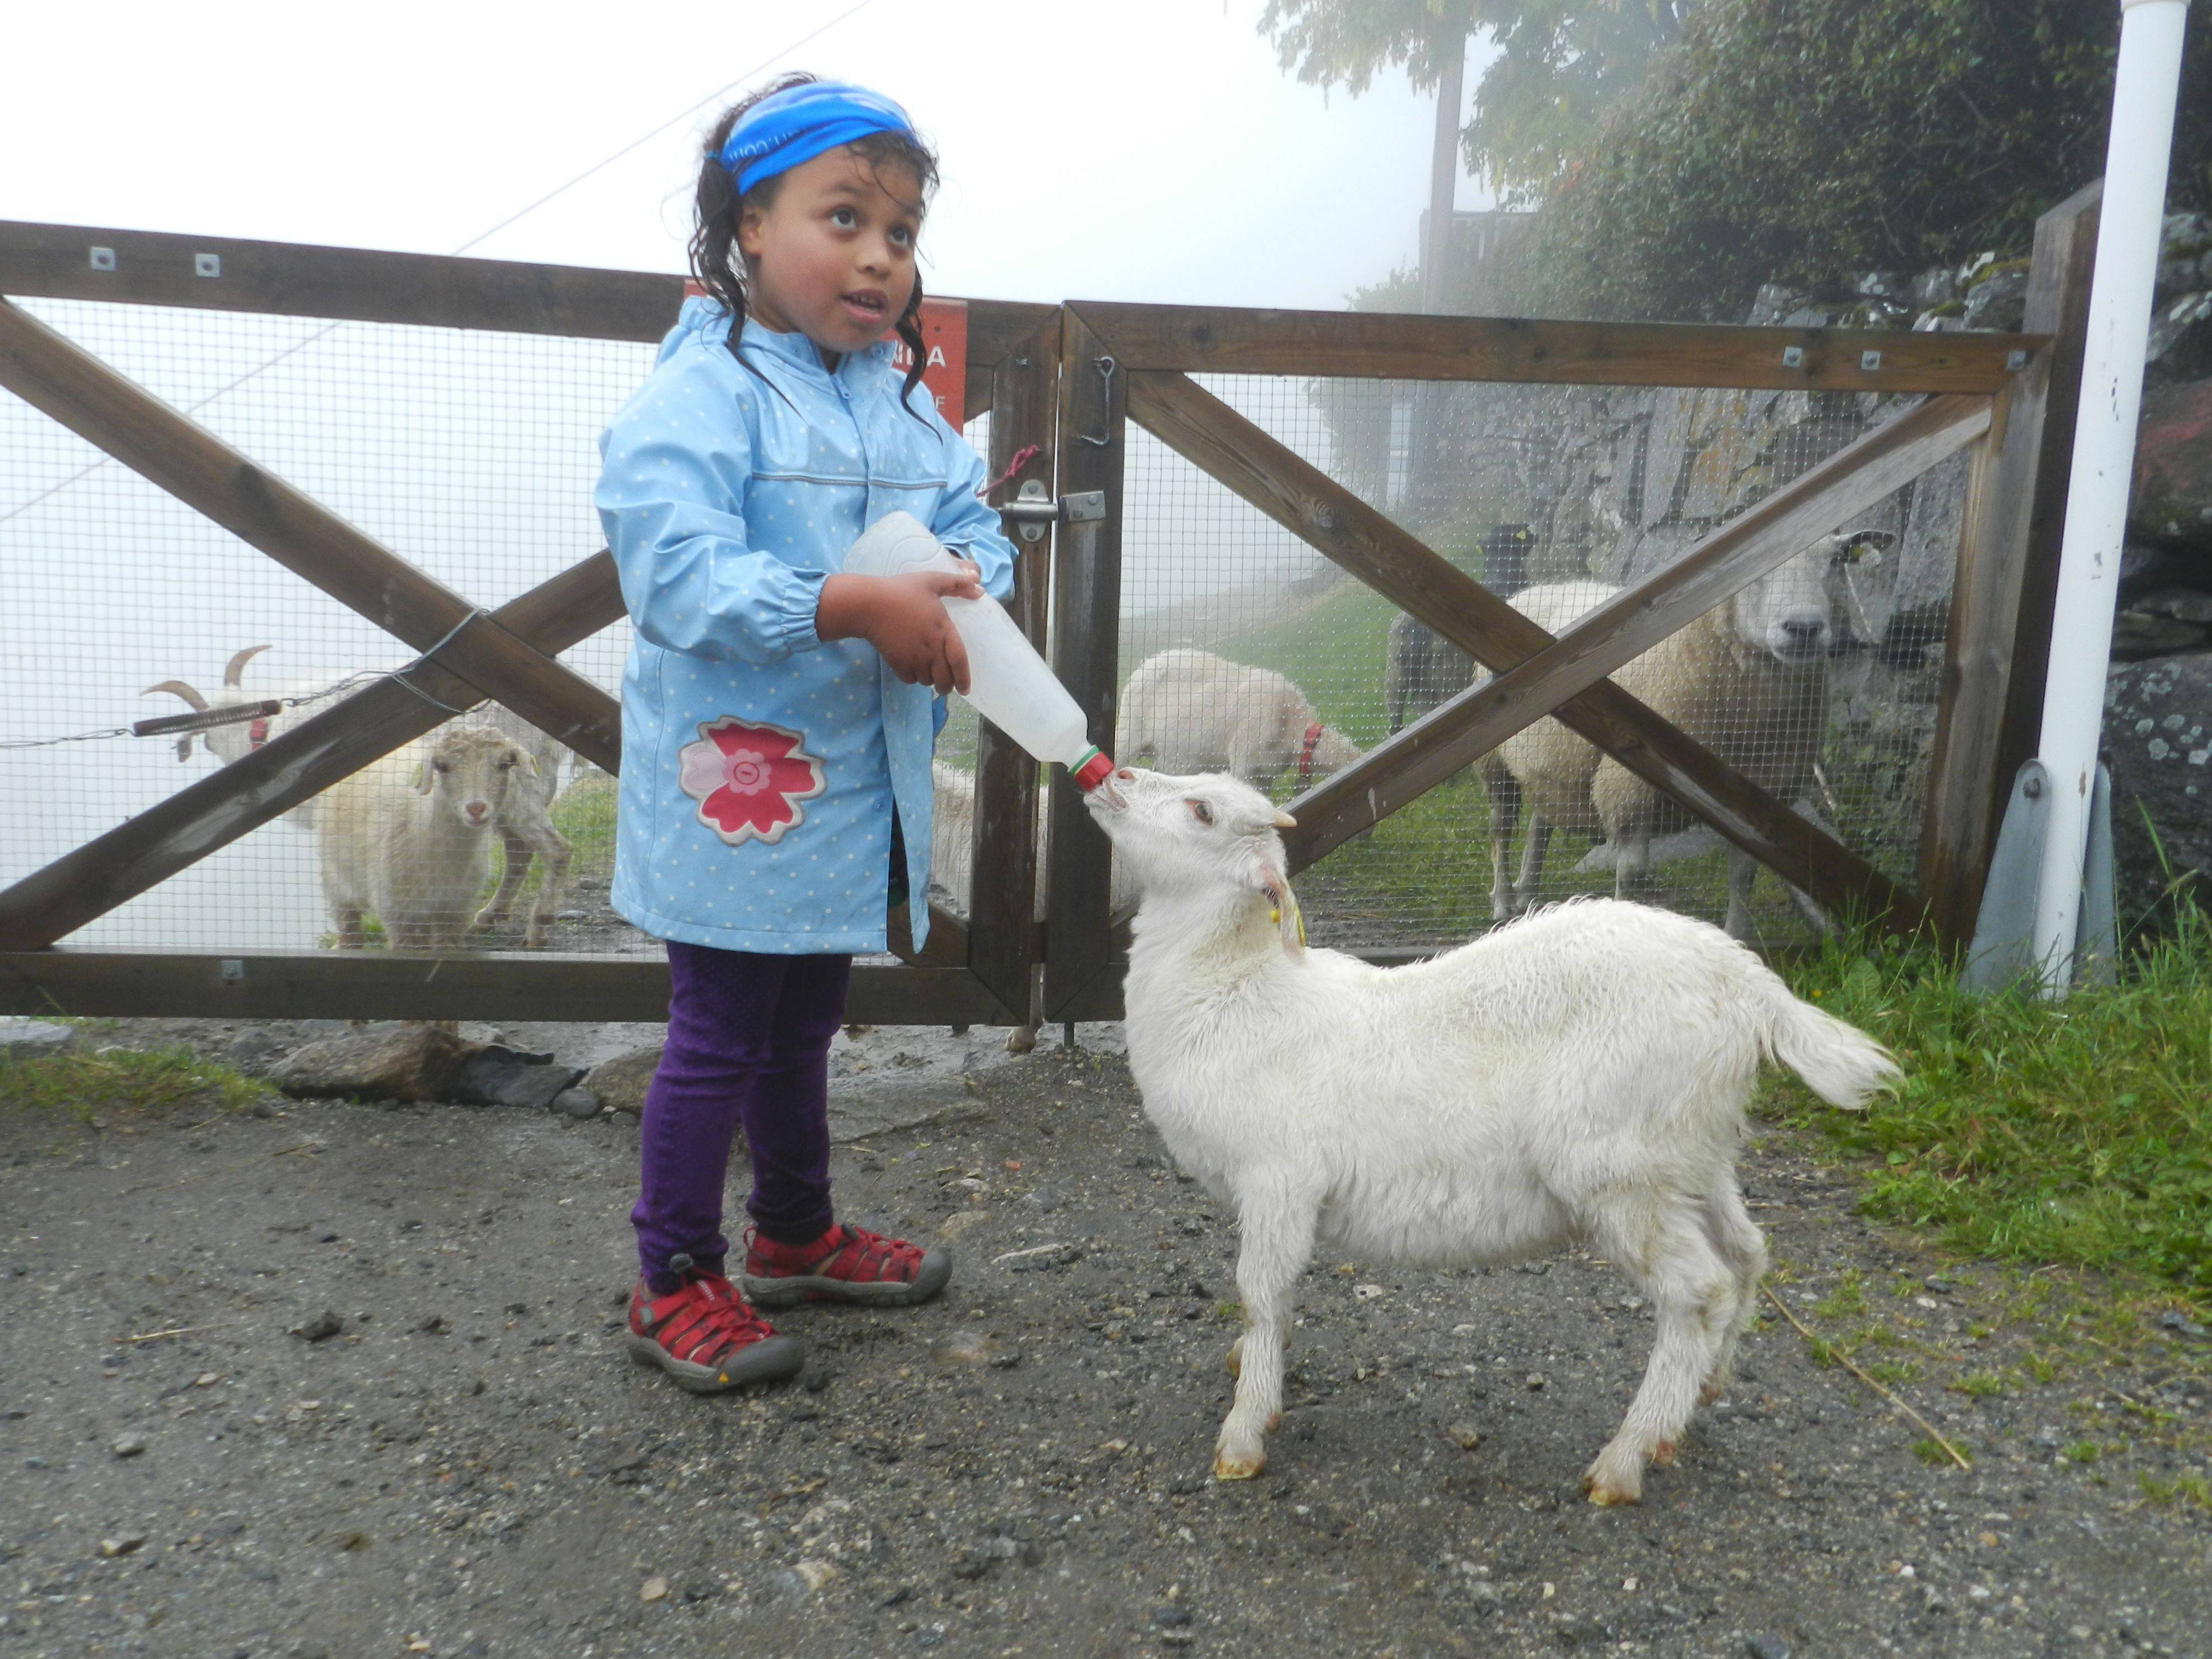 A hands-on visit to Westeras Farm in the village of Geiranger.